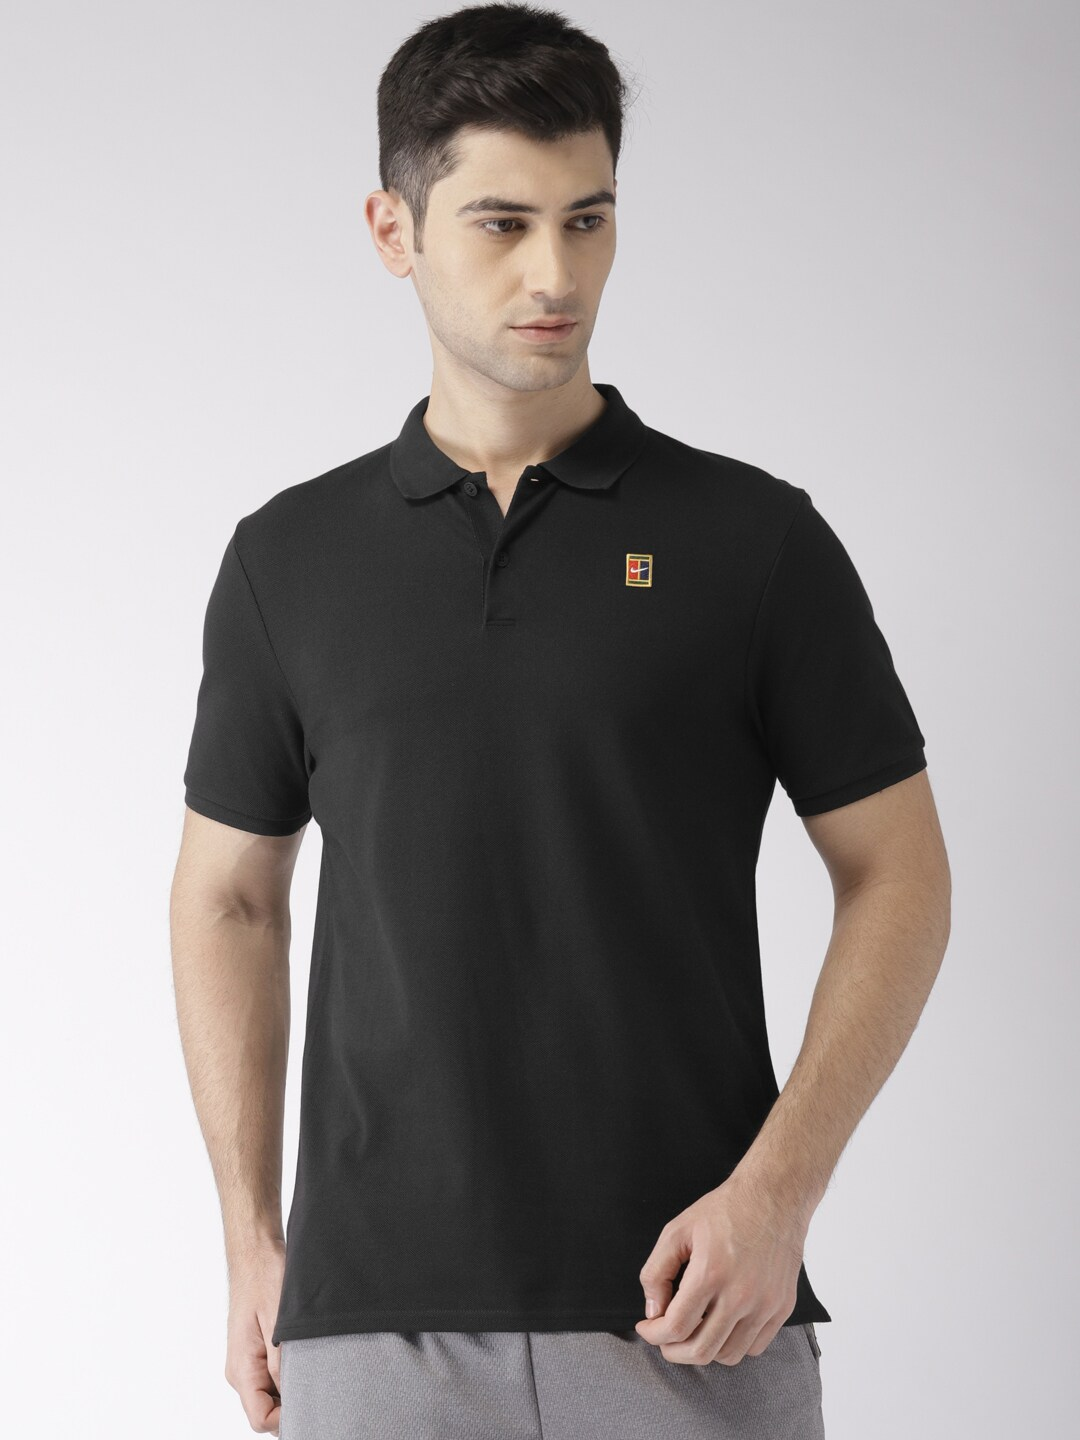 Nike TShirts - Buy Nike T-shirts Online in India  2d3730bf4